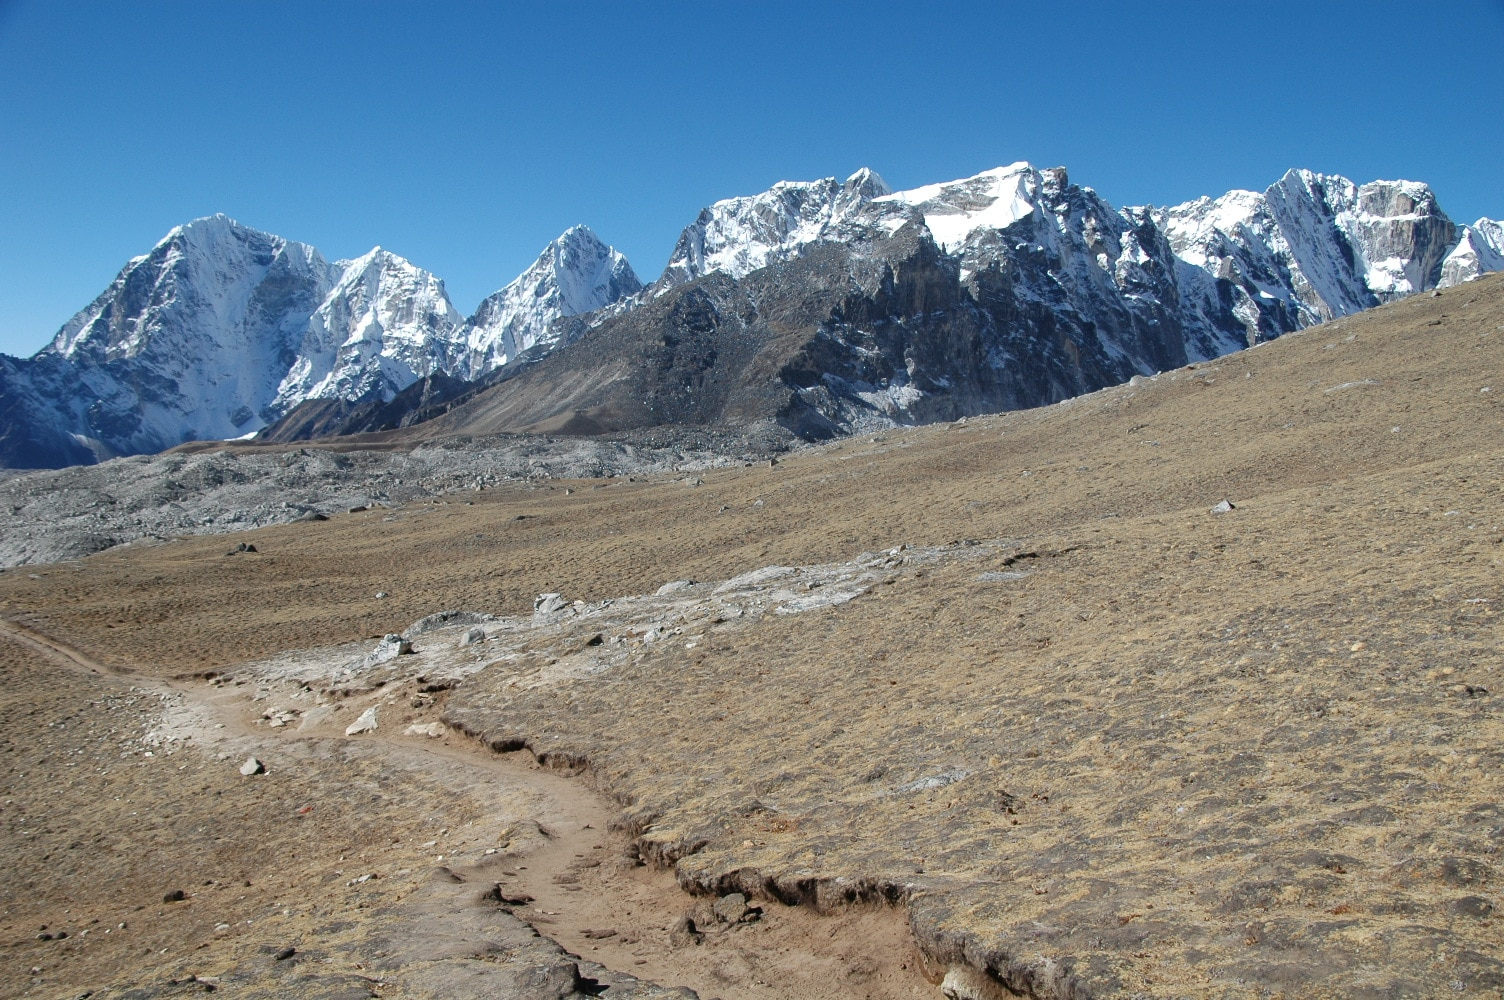 Budget Everest base camp trek- Cholatse Peak